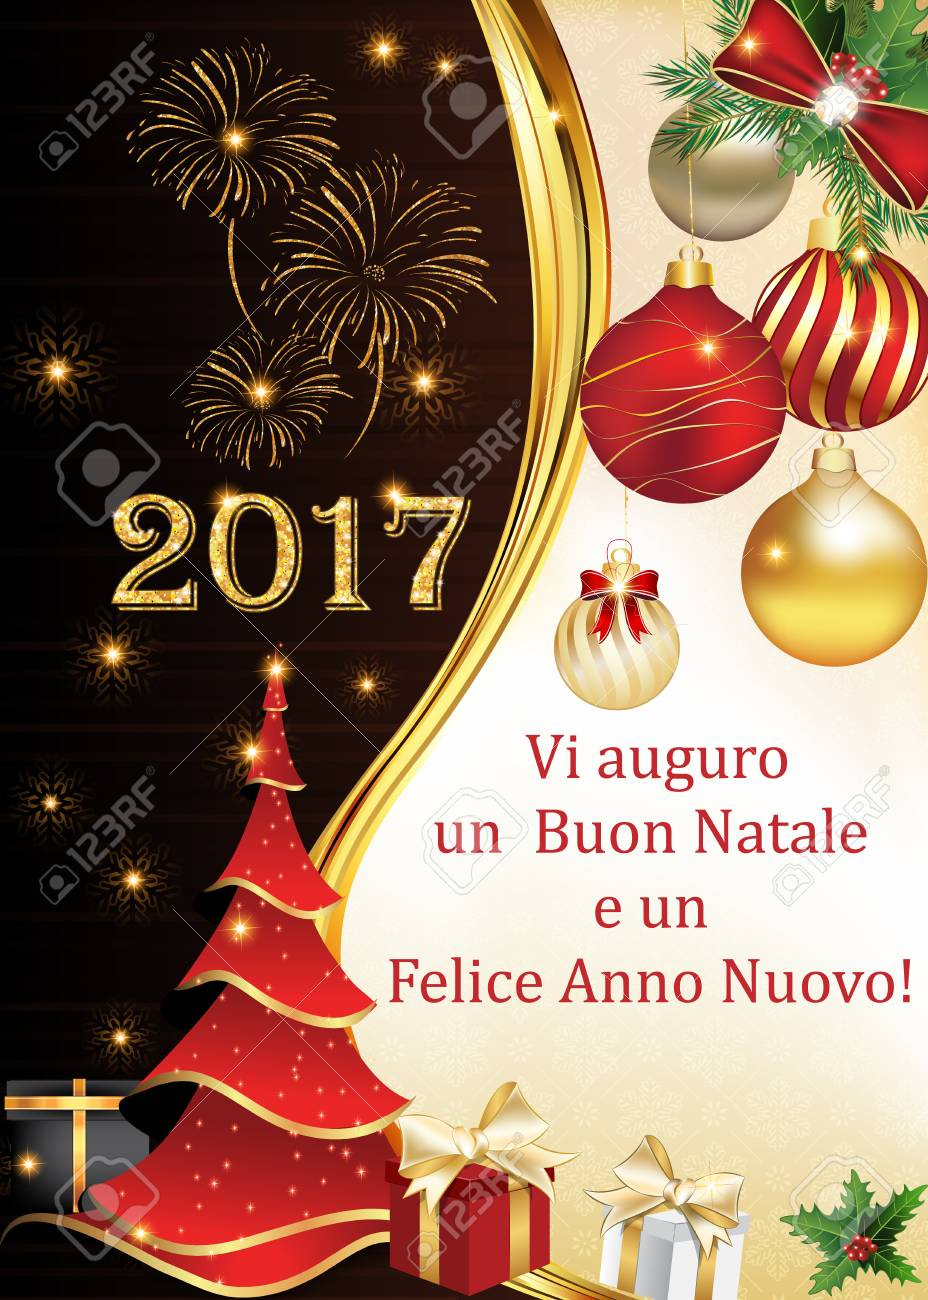 Italian New Year 2017 Corporate Greeting Card With Fireworks ...